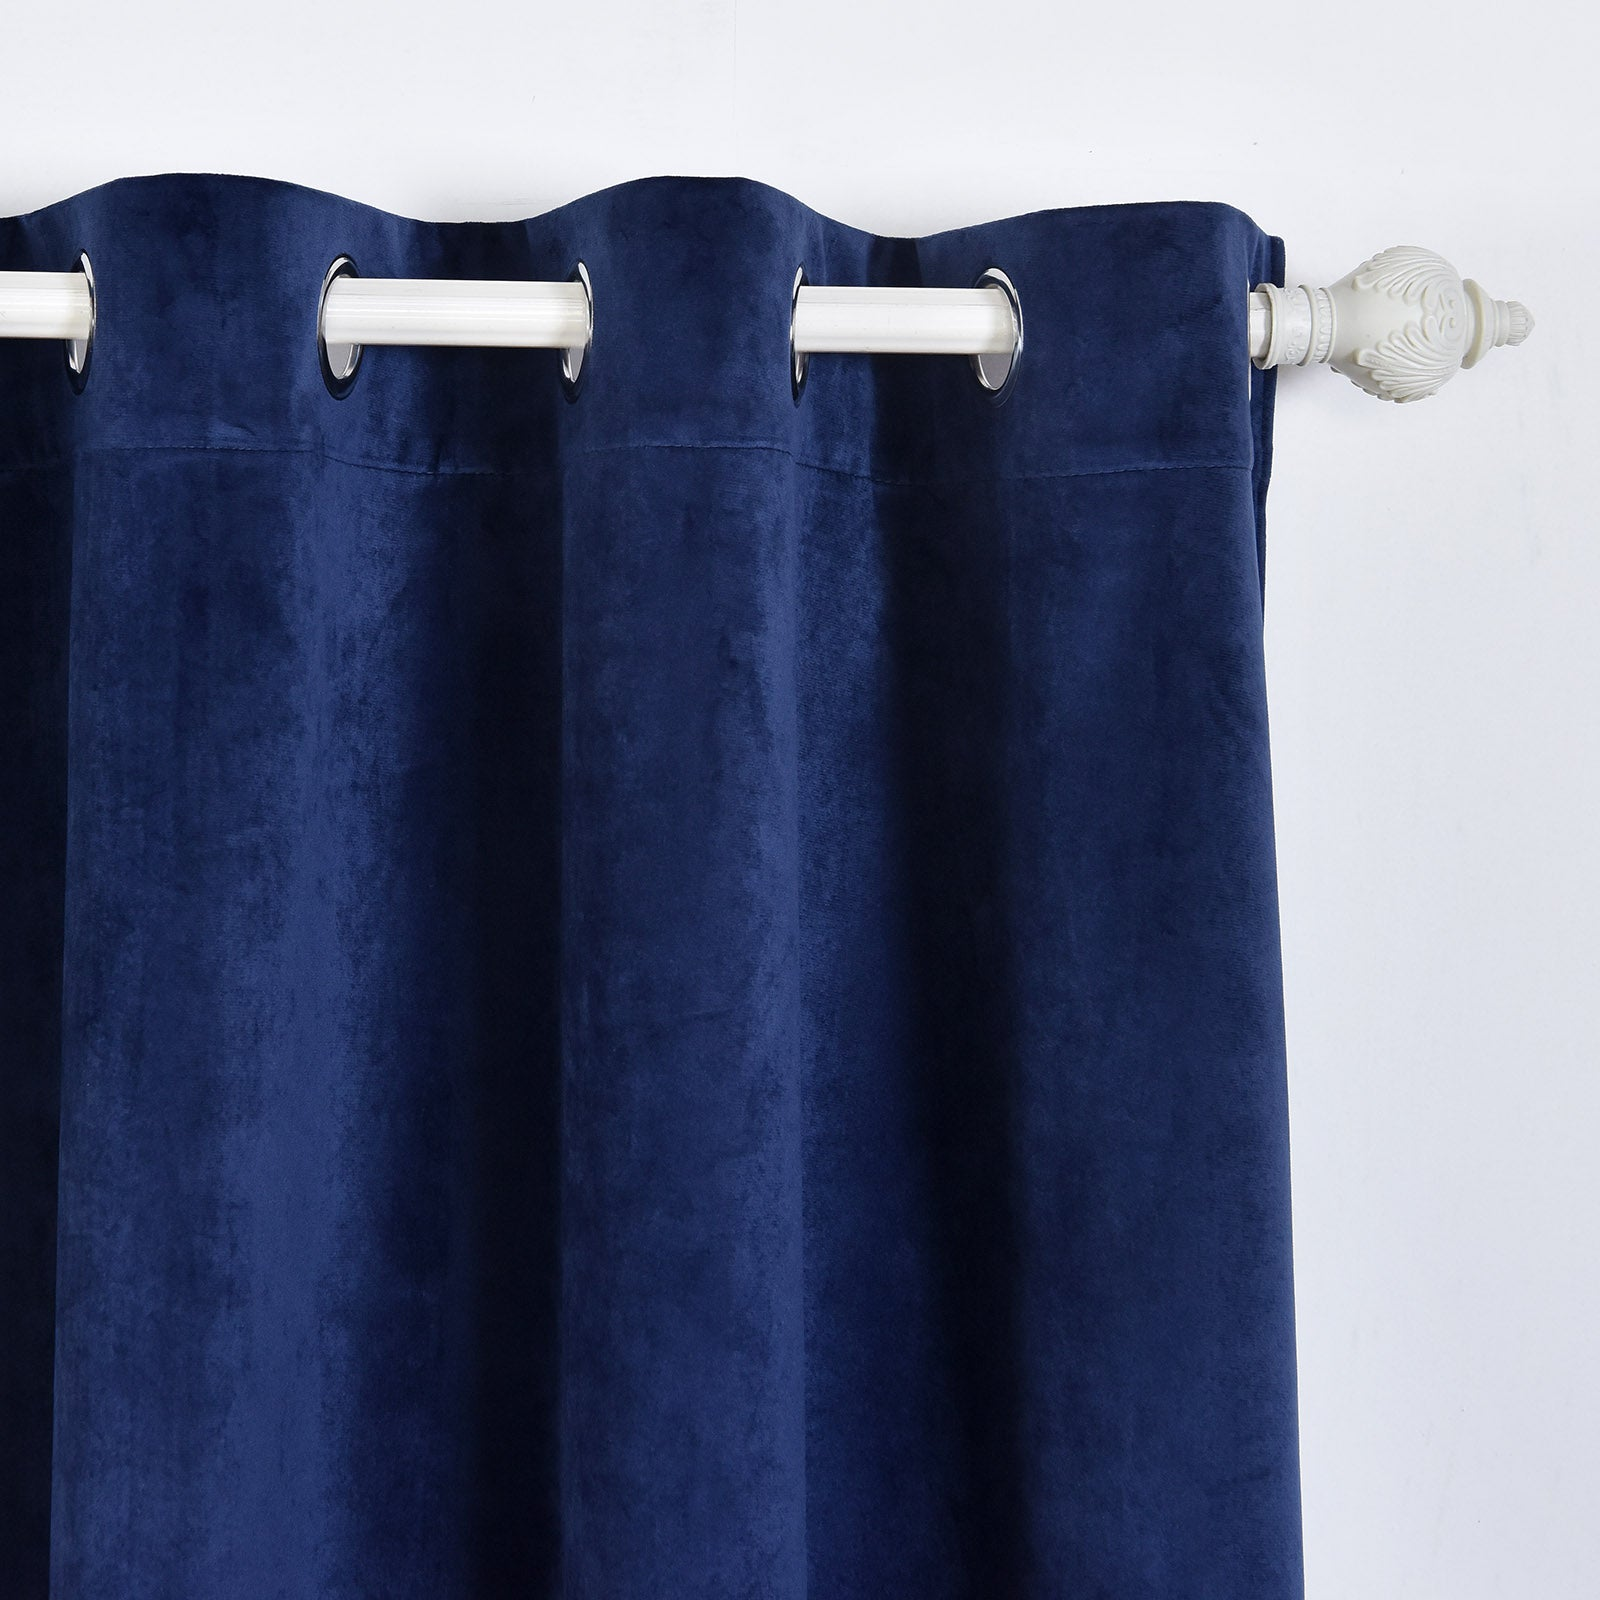 navy blackout curtains living room pack 52